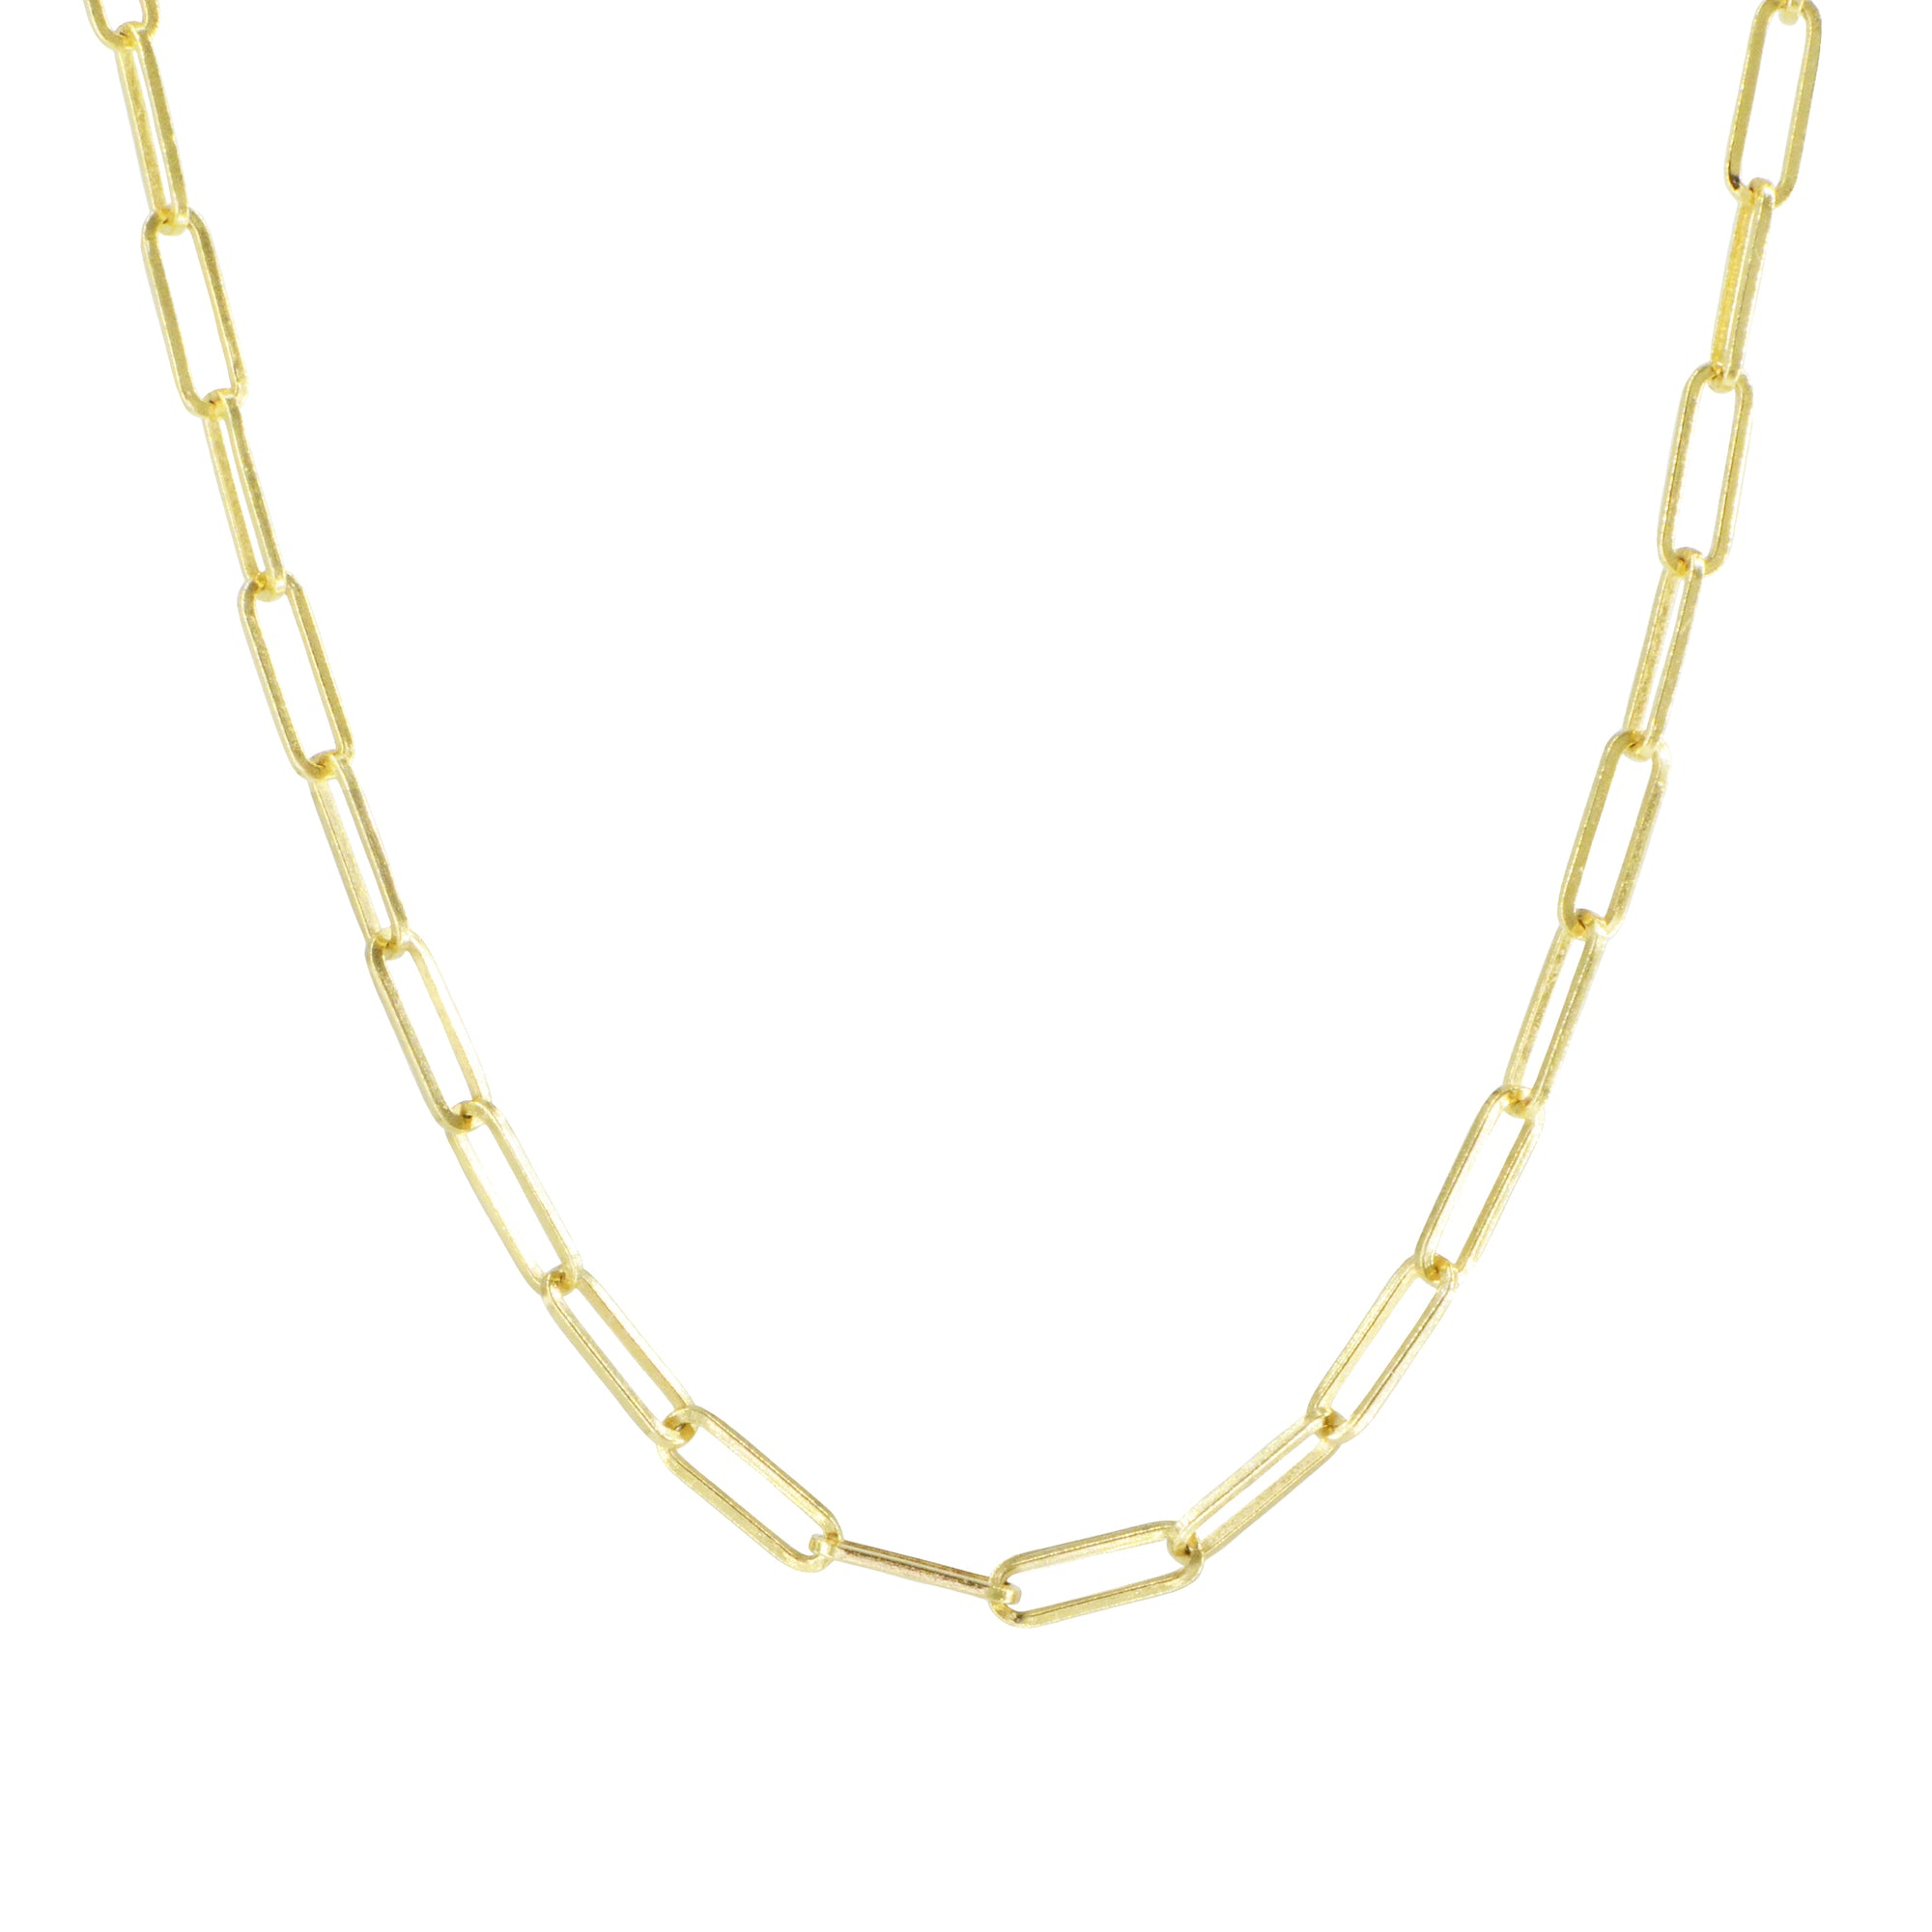 Paperclip Link Chain in 14k Gold